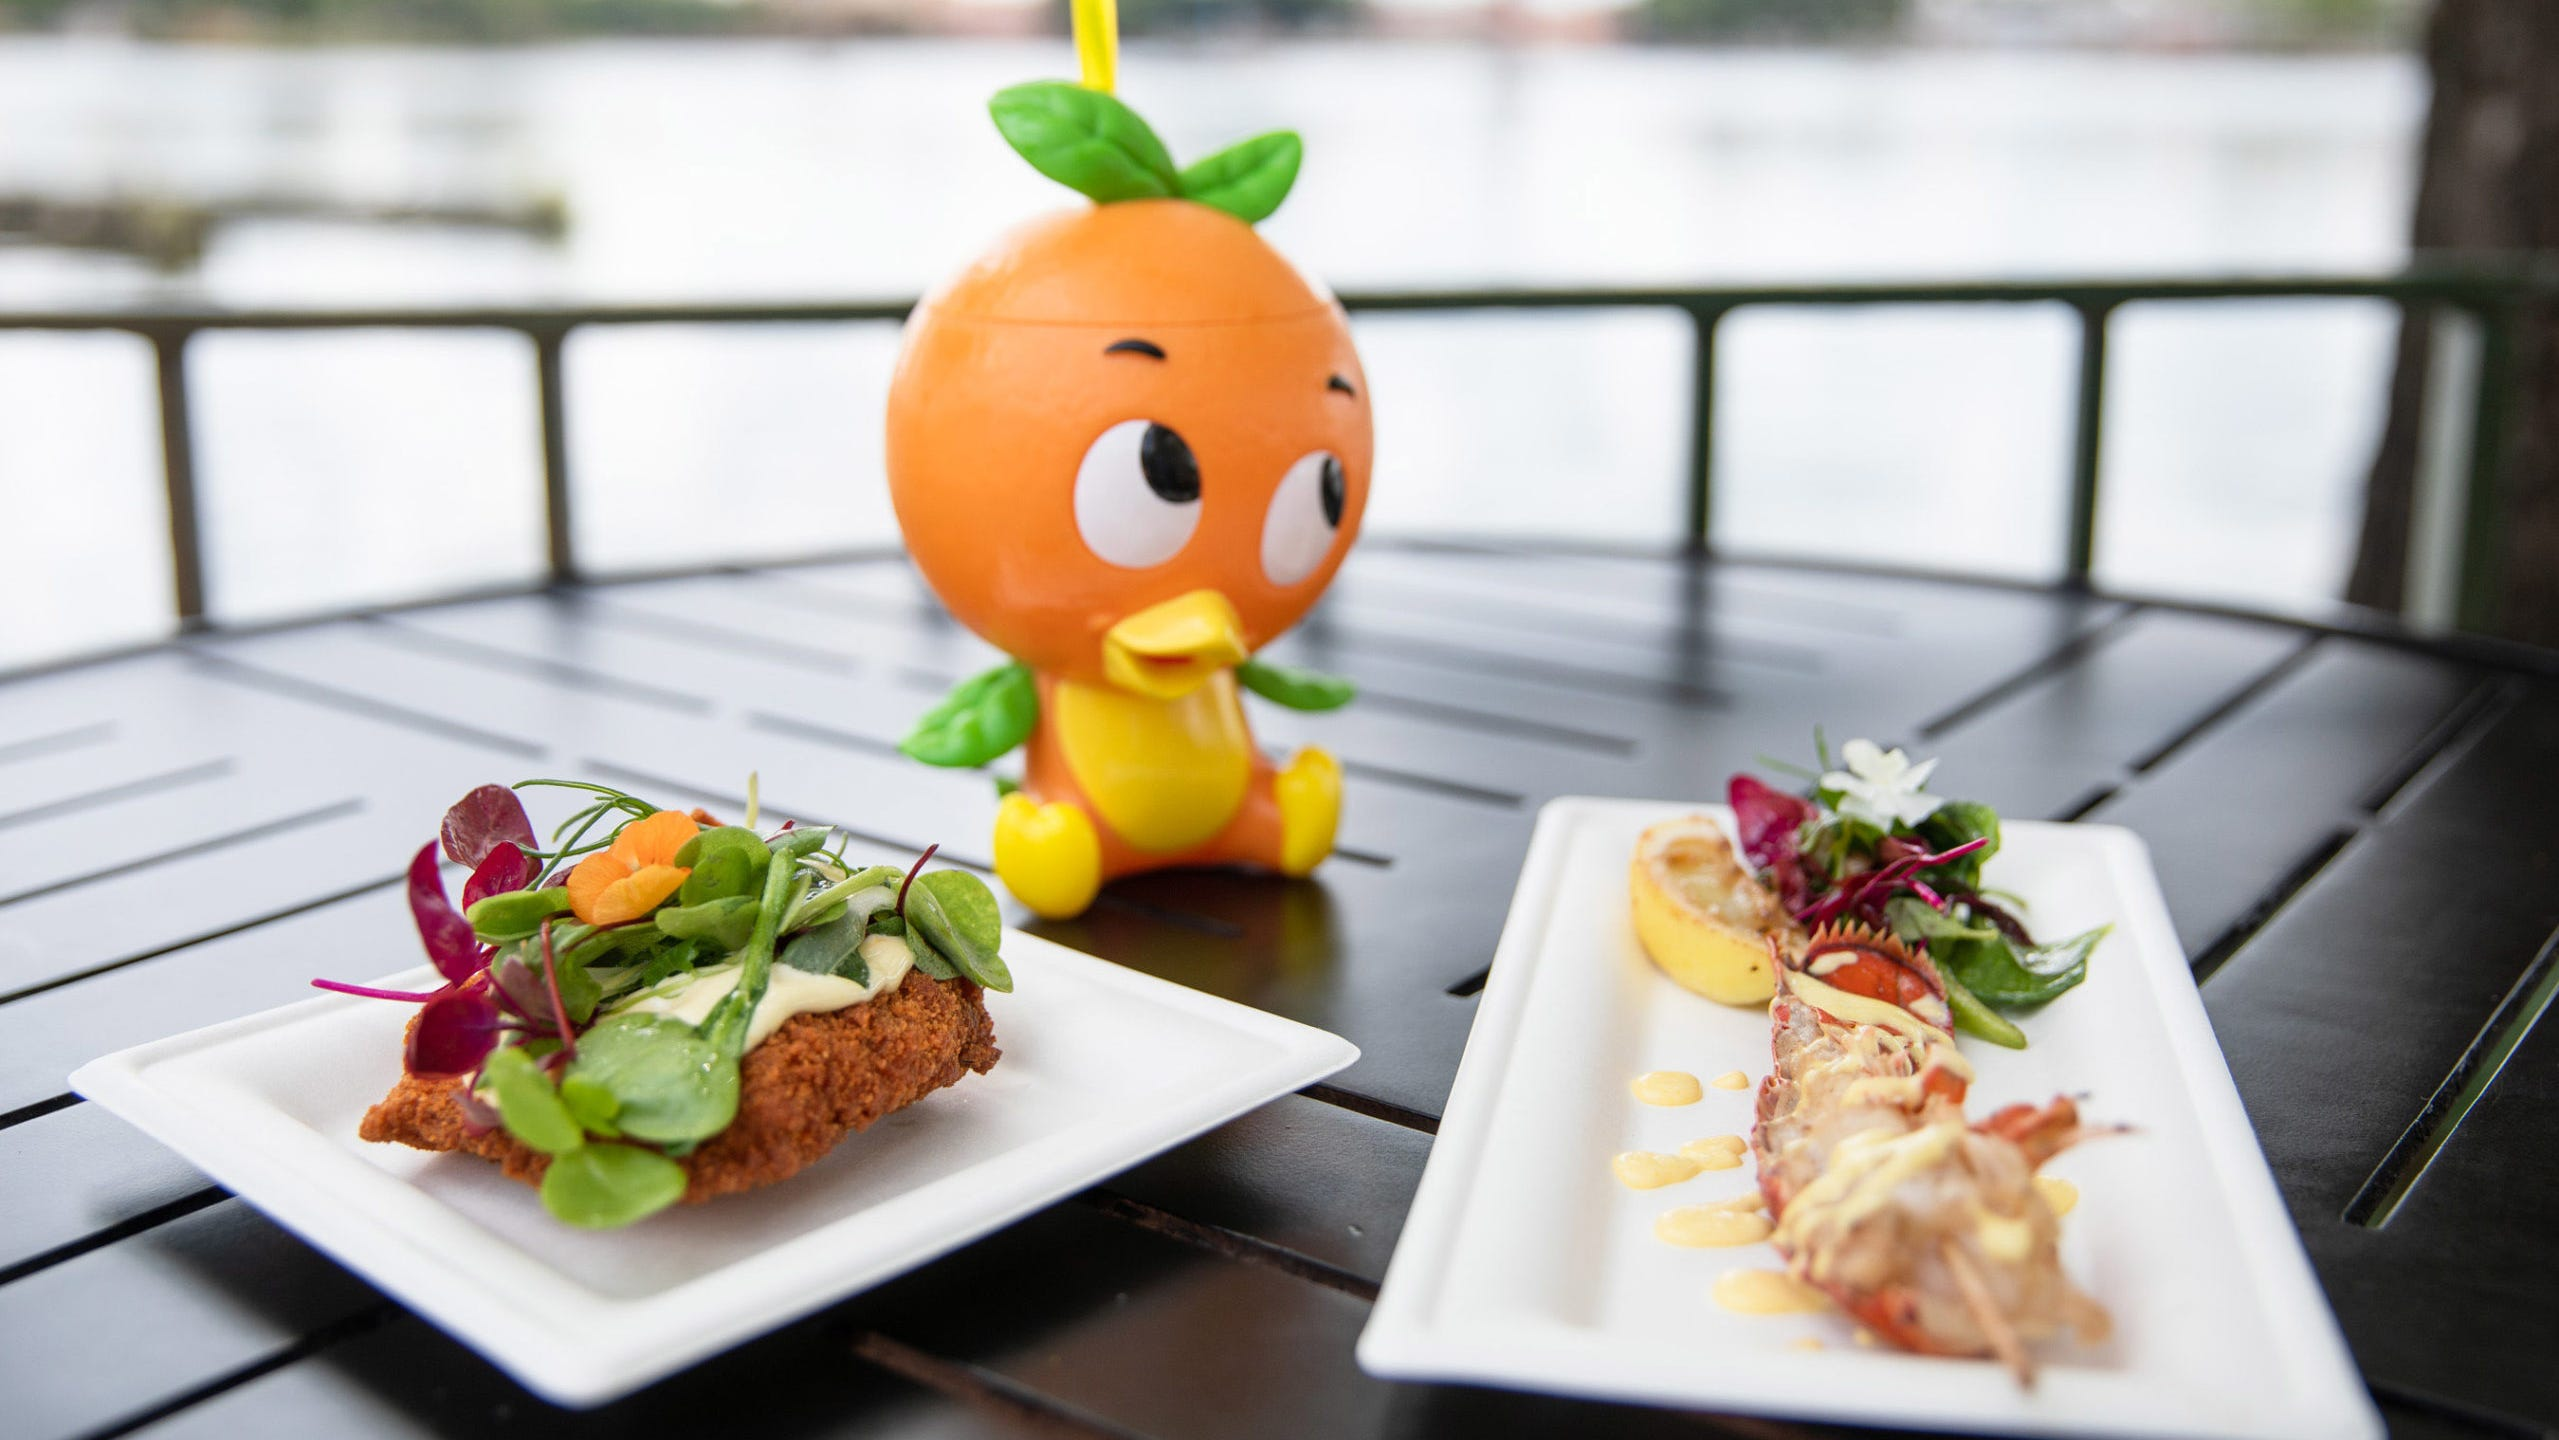 Epcot's annual food and wine festival still on at Walt Disney World, but on a much smaller scale due to COVID-19